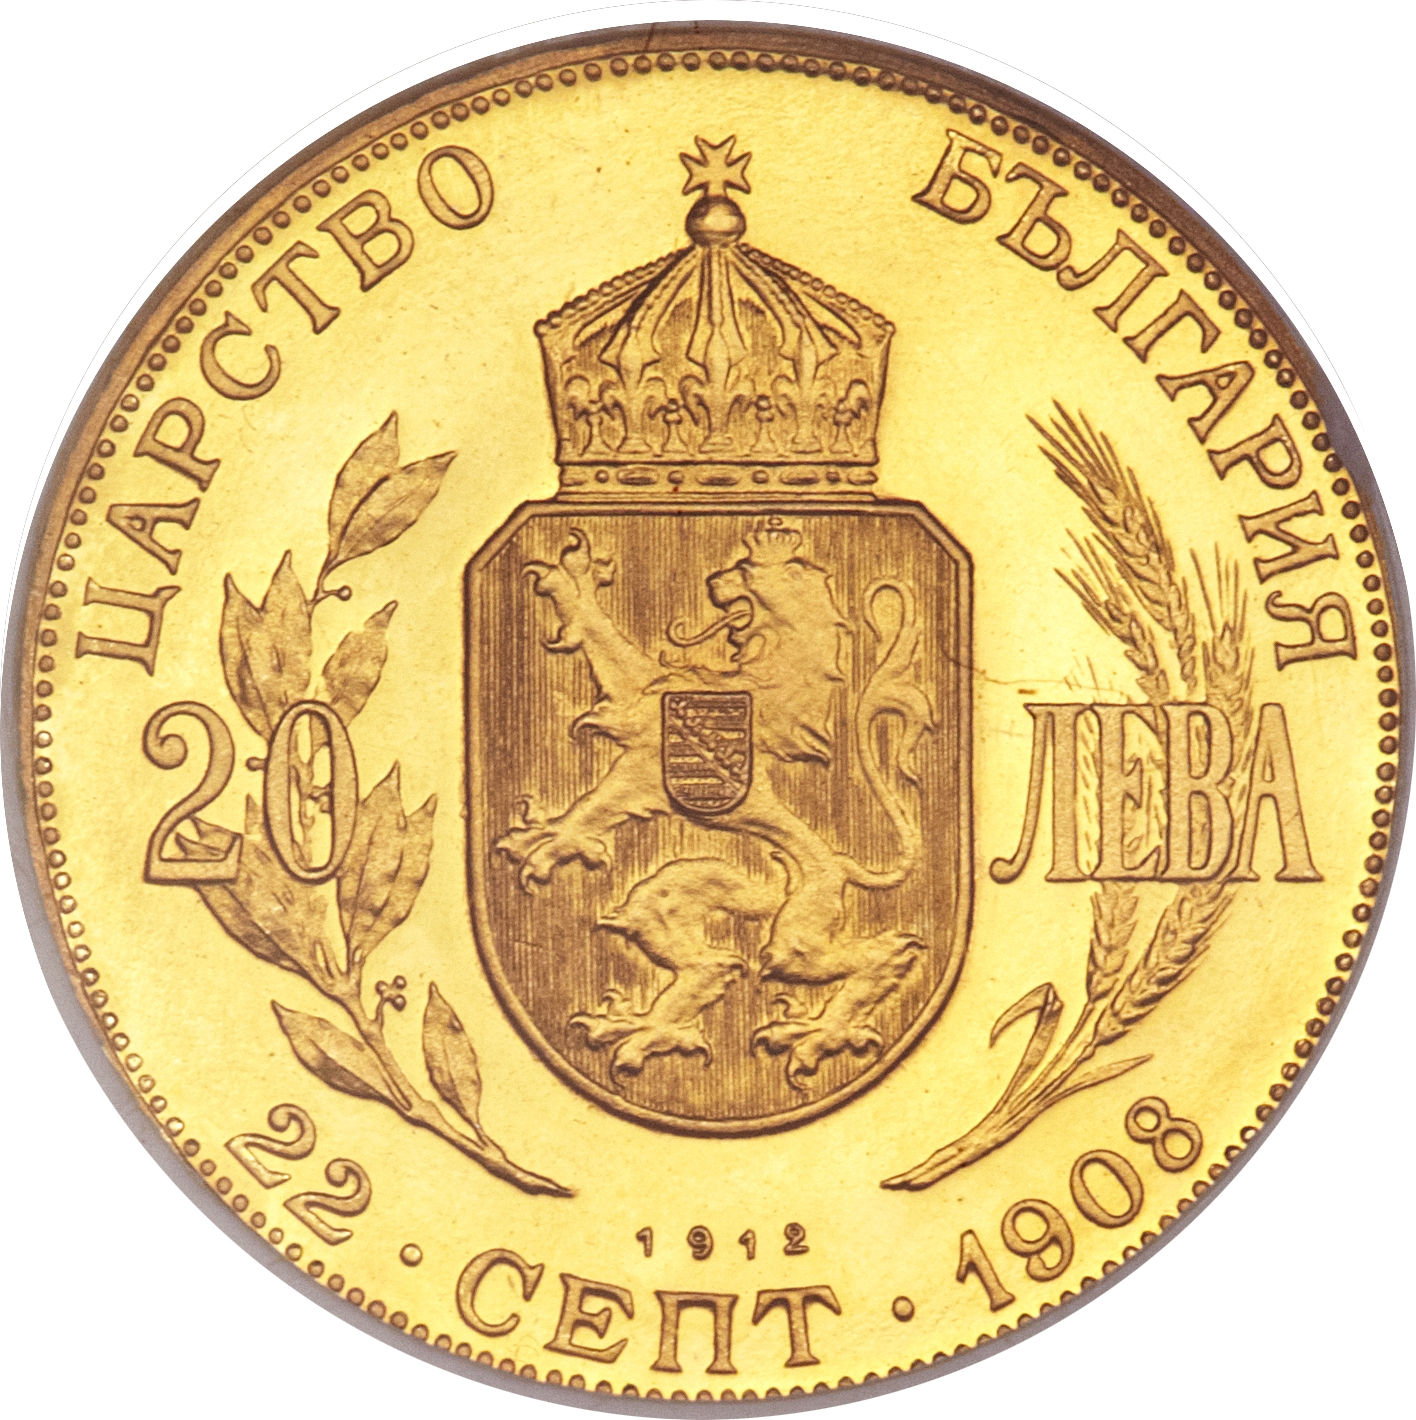 Twenty Leva (Gold): Photo Bulgaria 1912 20 leva